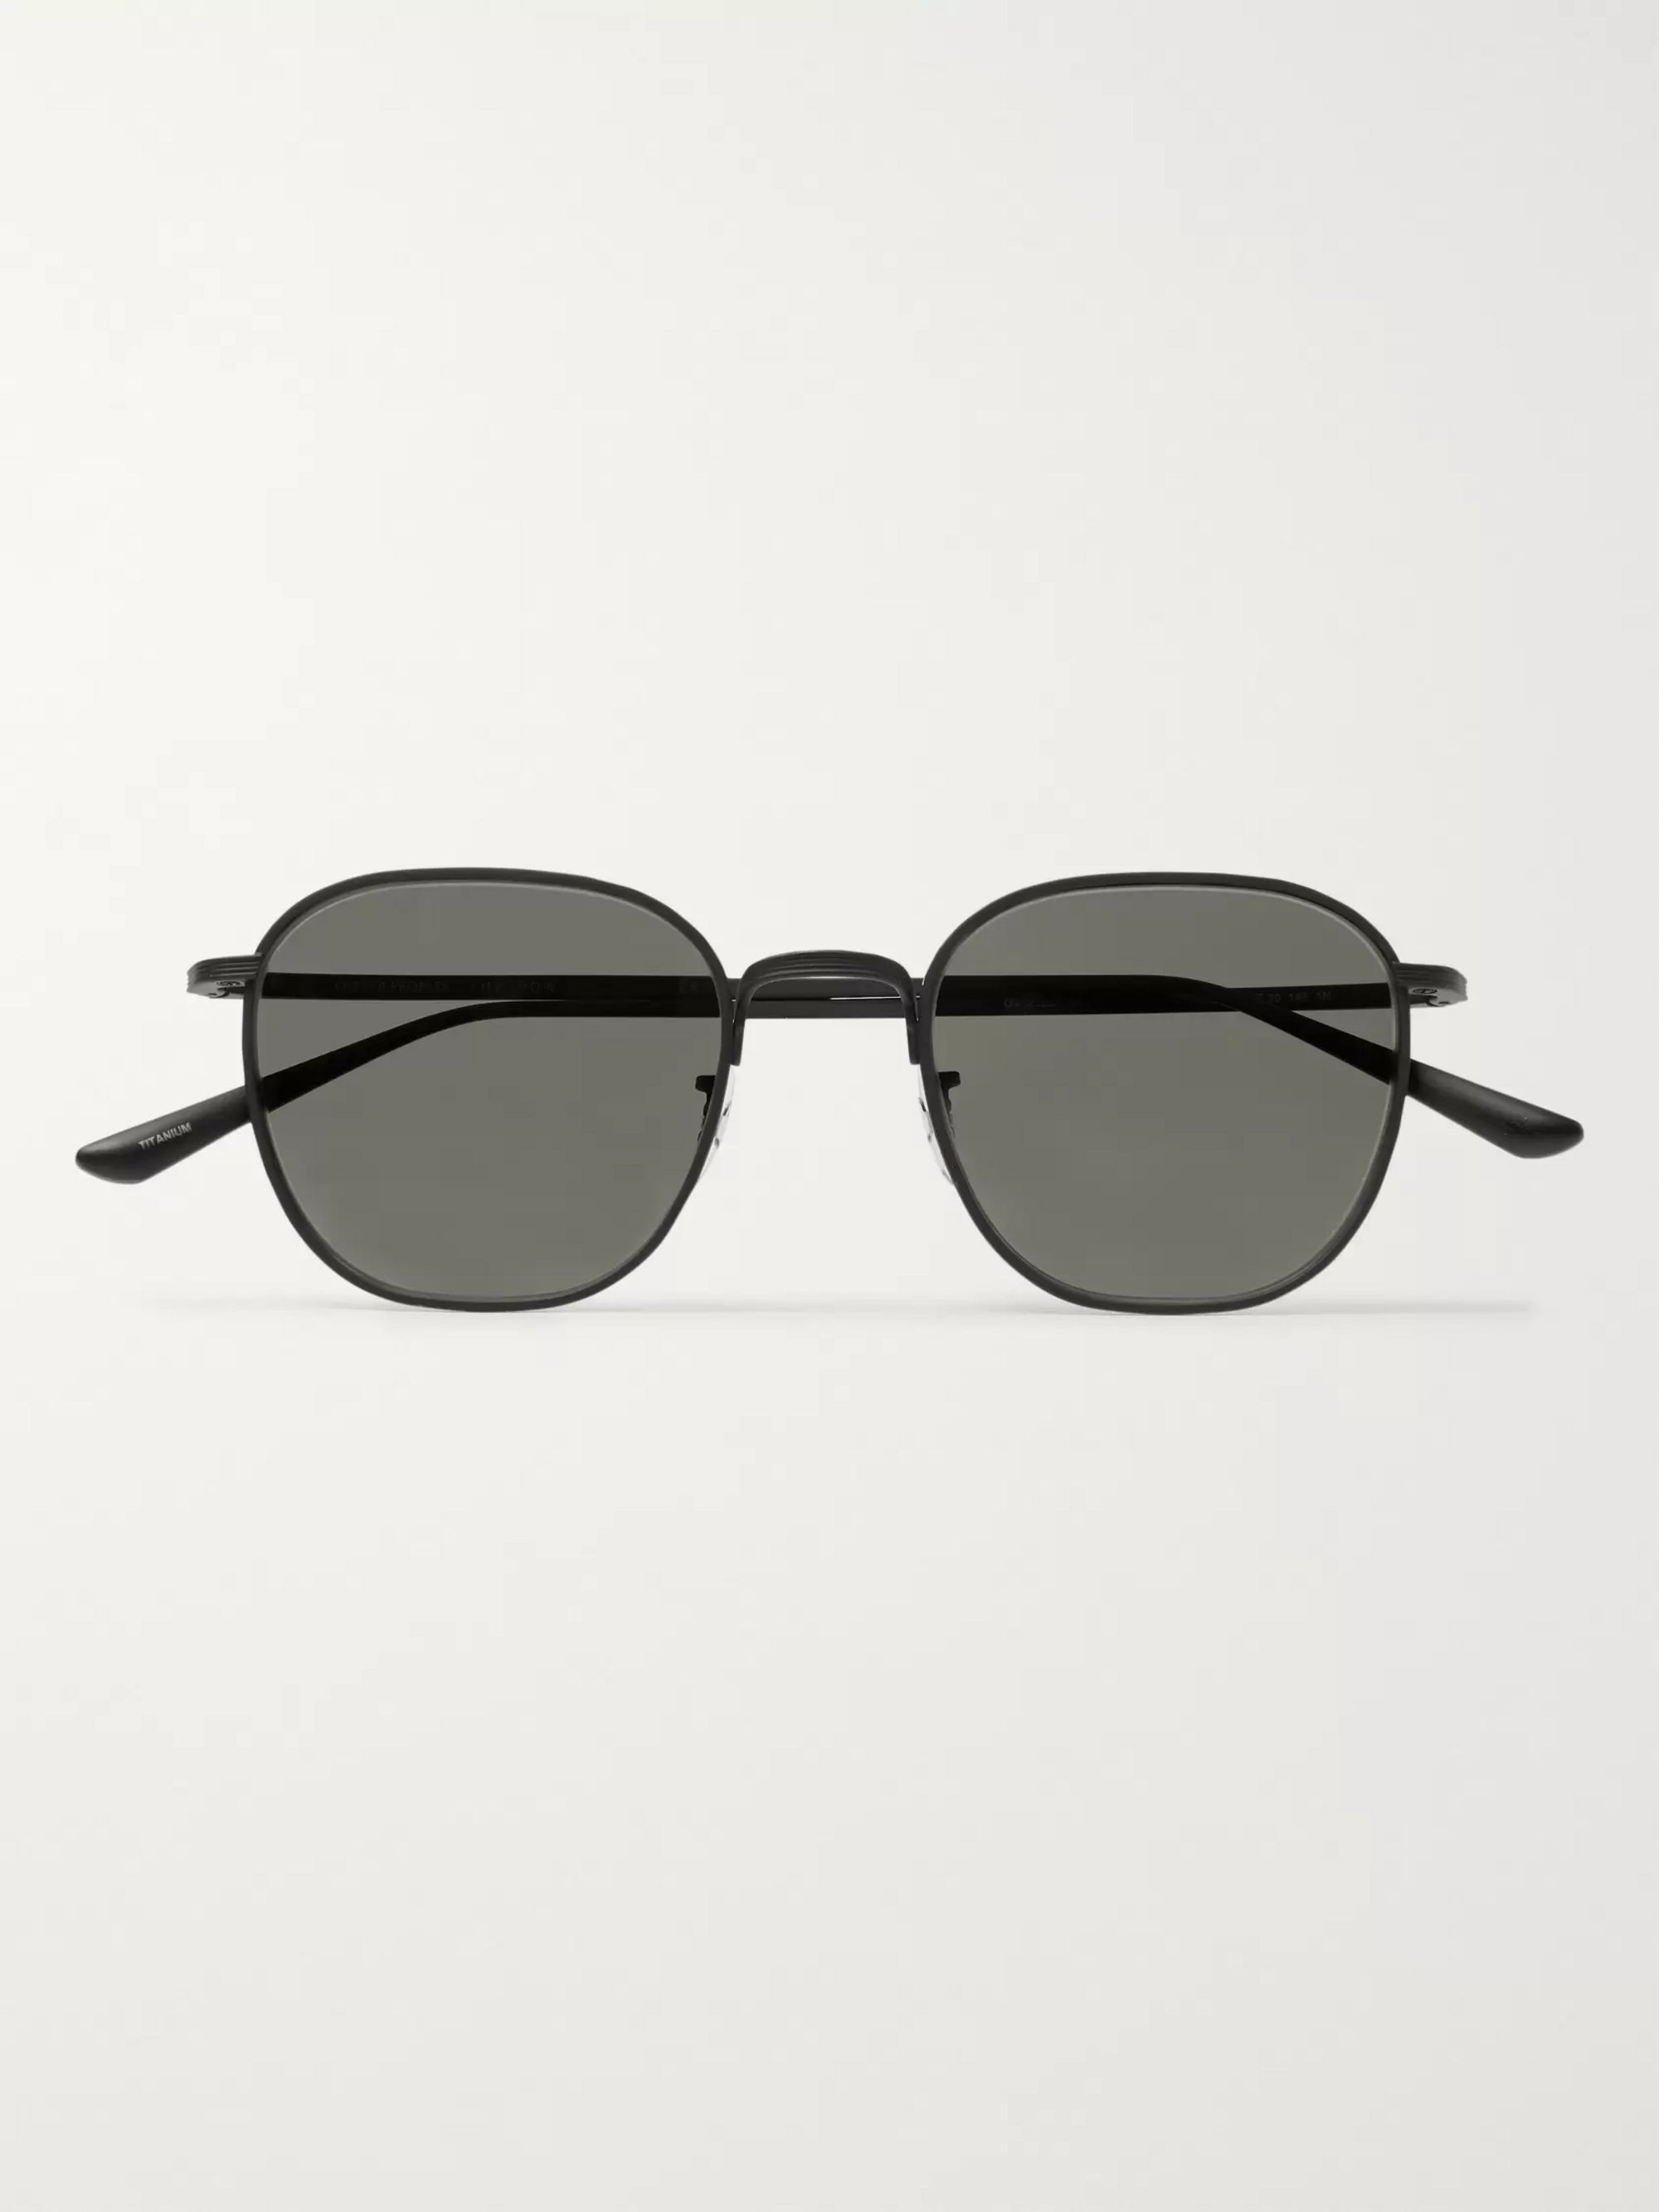 The Row + Oliver Peoples Board Meeting 2 Square-Frame Silver-Tone Titanium Sunglasses